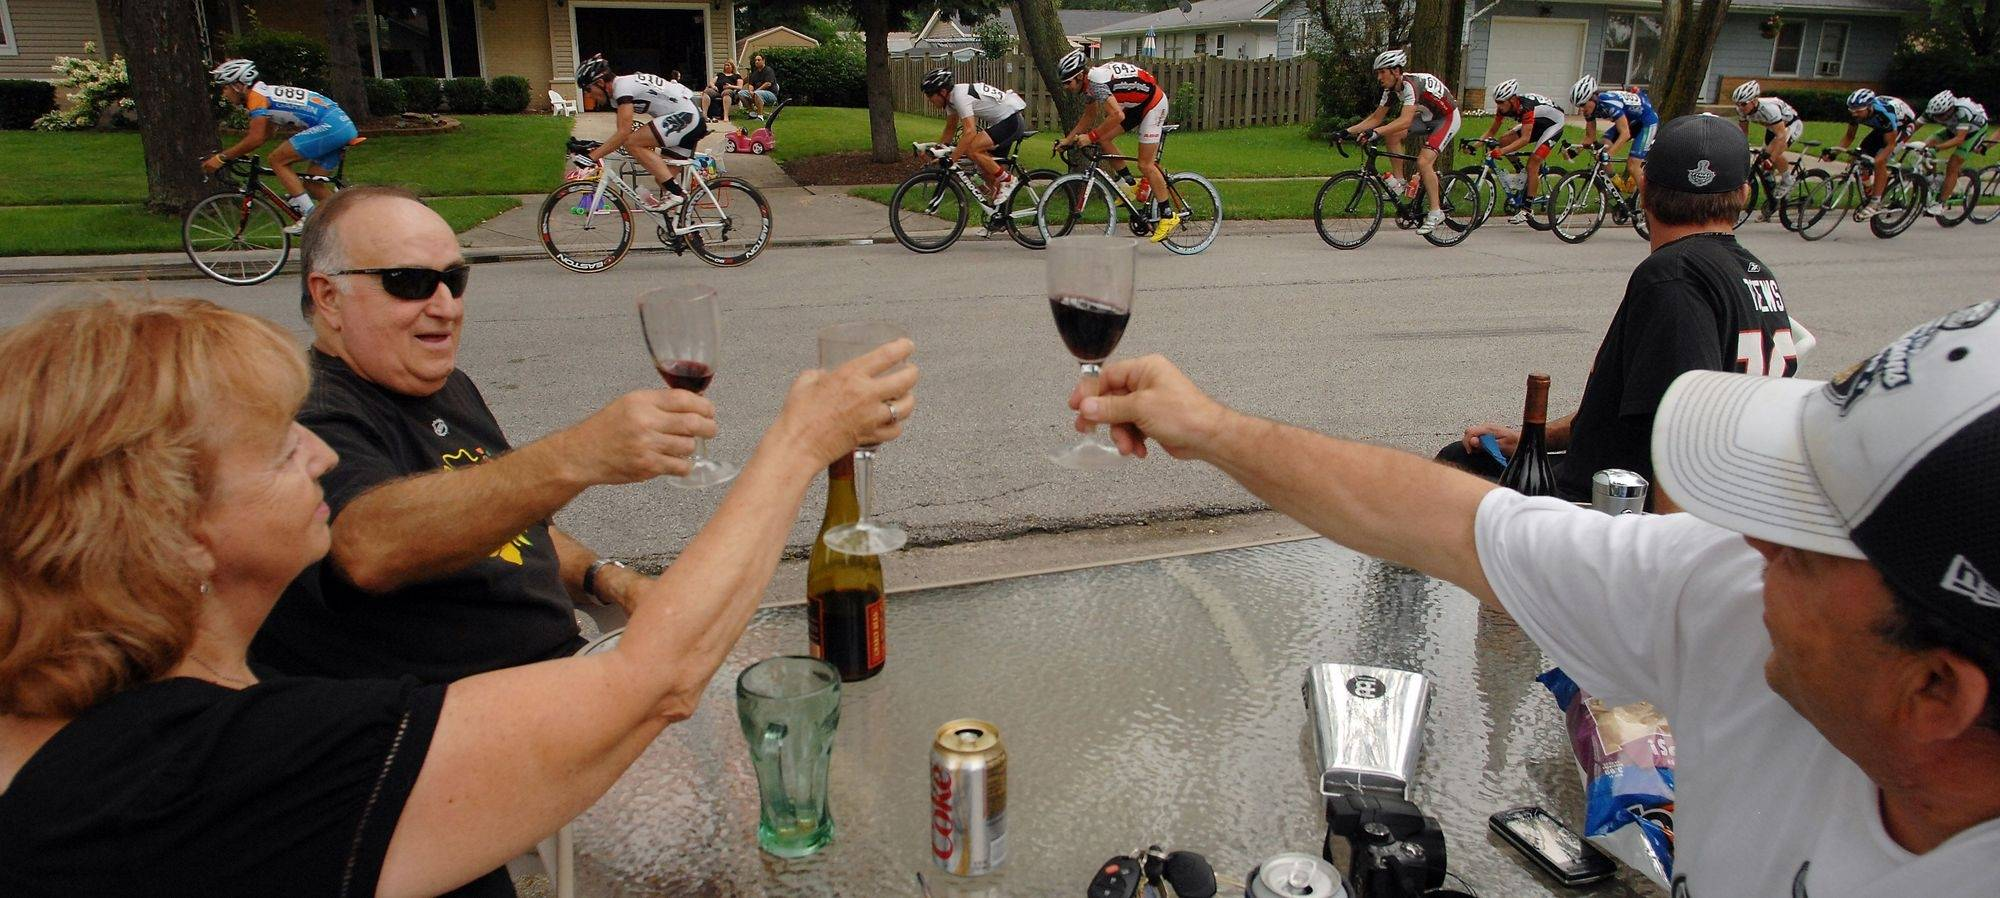 Hoffman Estates Fred Tognocchi and his wife Pat, along with Paul Tognocchi of Elk Grove raise a glass of wine to salute the men's pro racing on Saturday in Elk Grove.